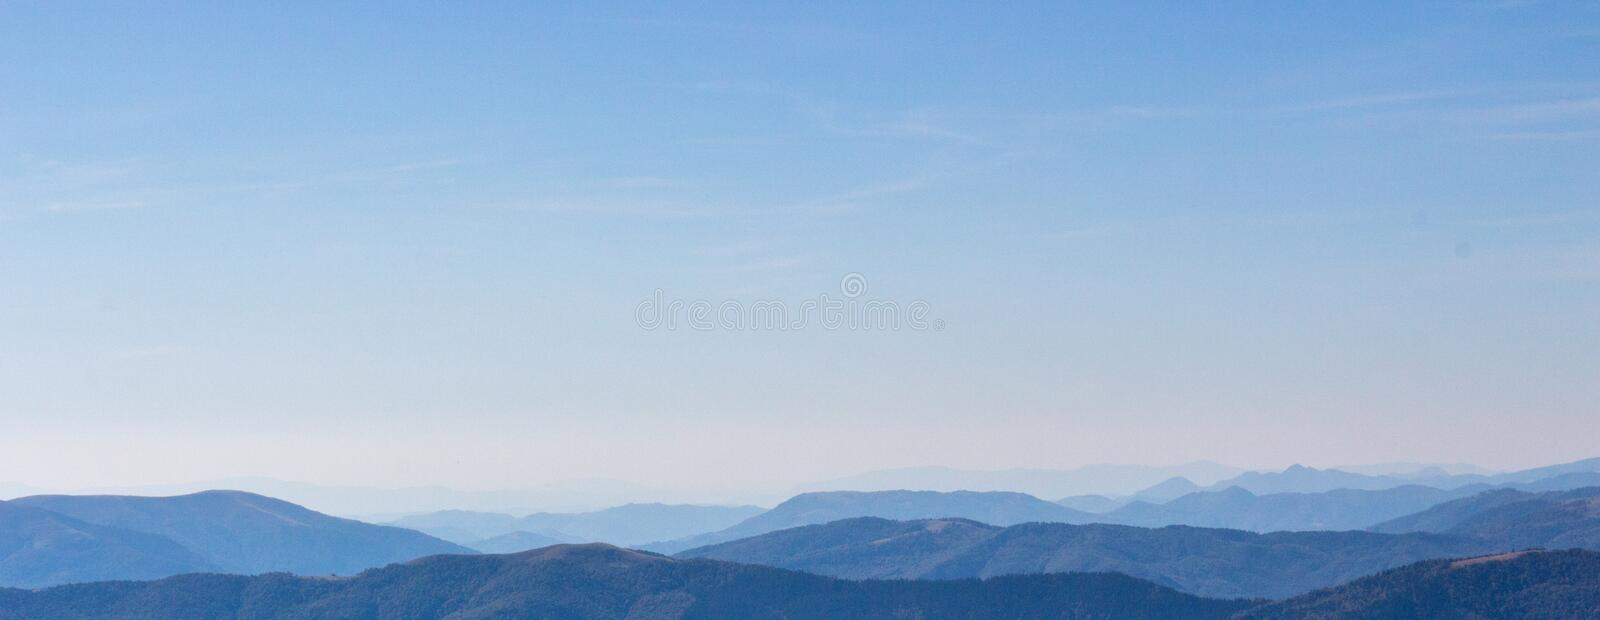 Blue mountains peaks panorama. Vastness and calmness concept. Clear blue sky over blue mountains on sunset. stock photography